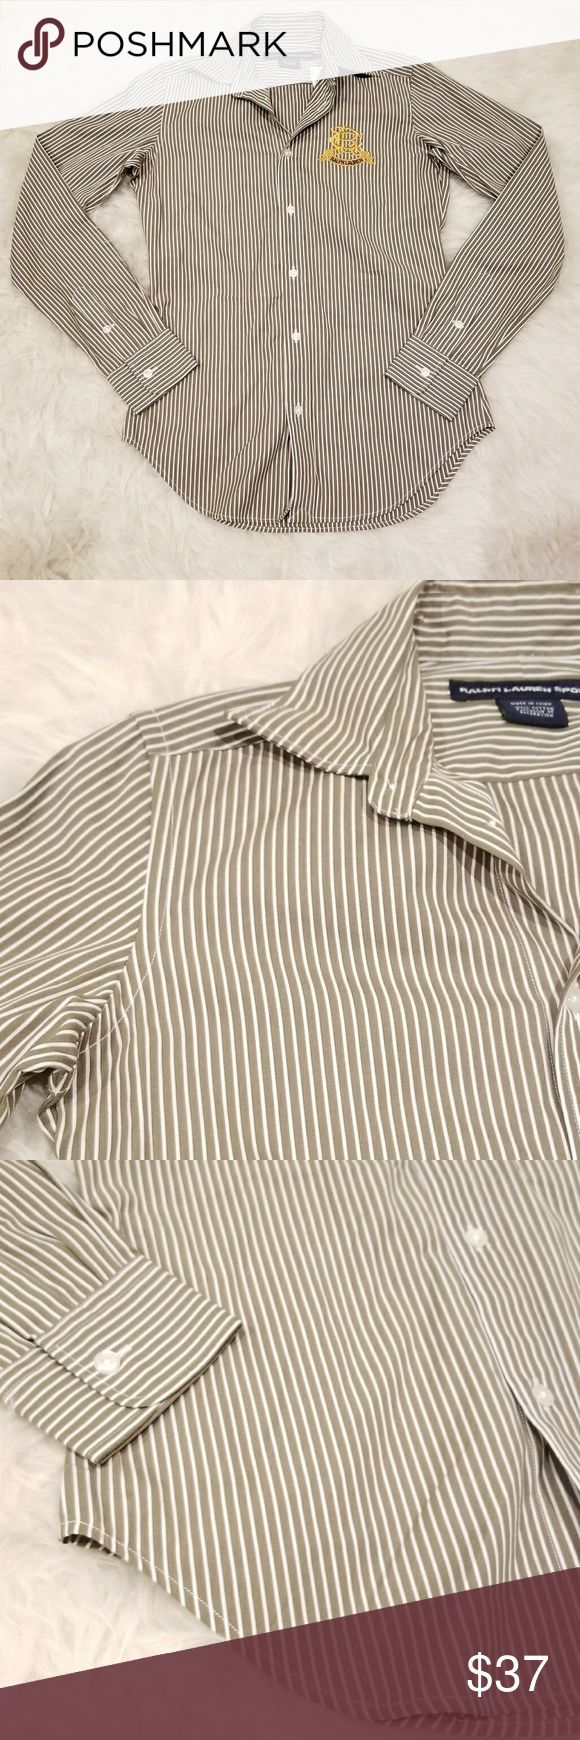 """Ralp Lauren Sport Women's Sage/White Blouse Ralp Lauren Sport Women's Sage/White Striped Long Sleeve Gold Crest NWT Size 2. New item in excellent condition.  Pit to pit: 18""""  Waist: 15""""  Length: 26""""  (Please see pictures for description and item features) Ralph Lauren Tops Button Down Shirts"""